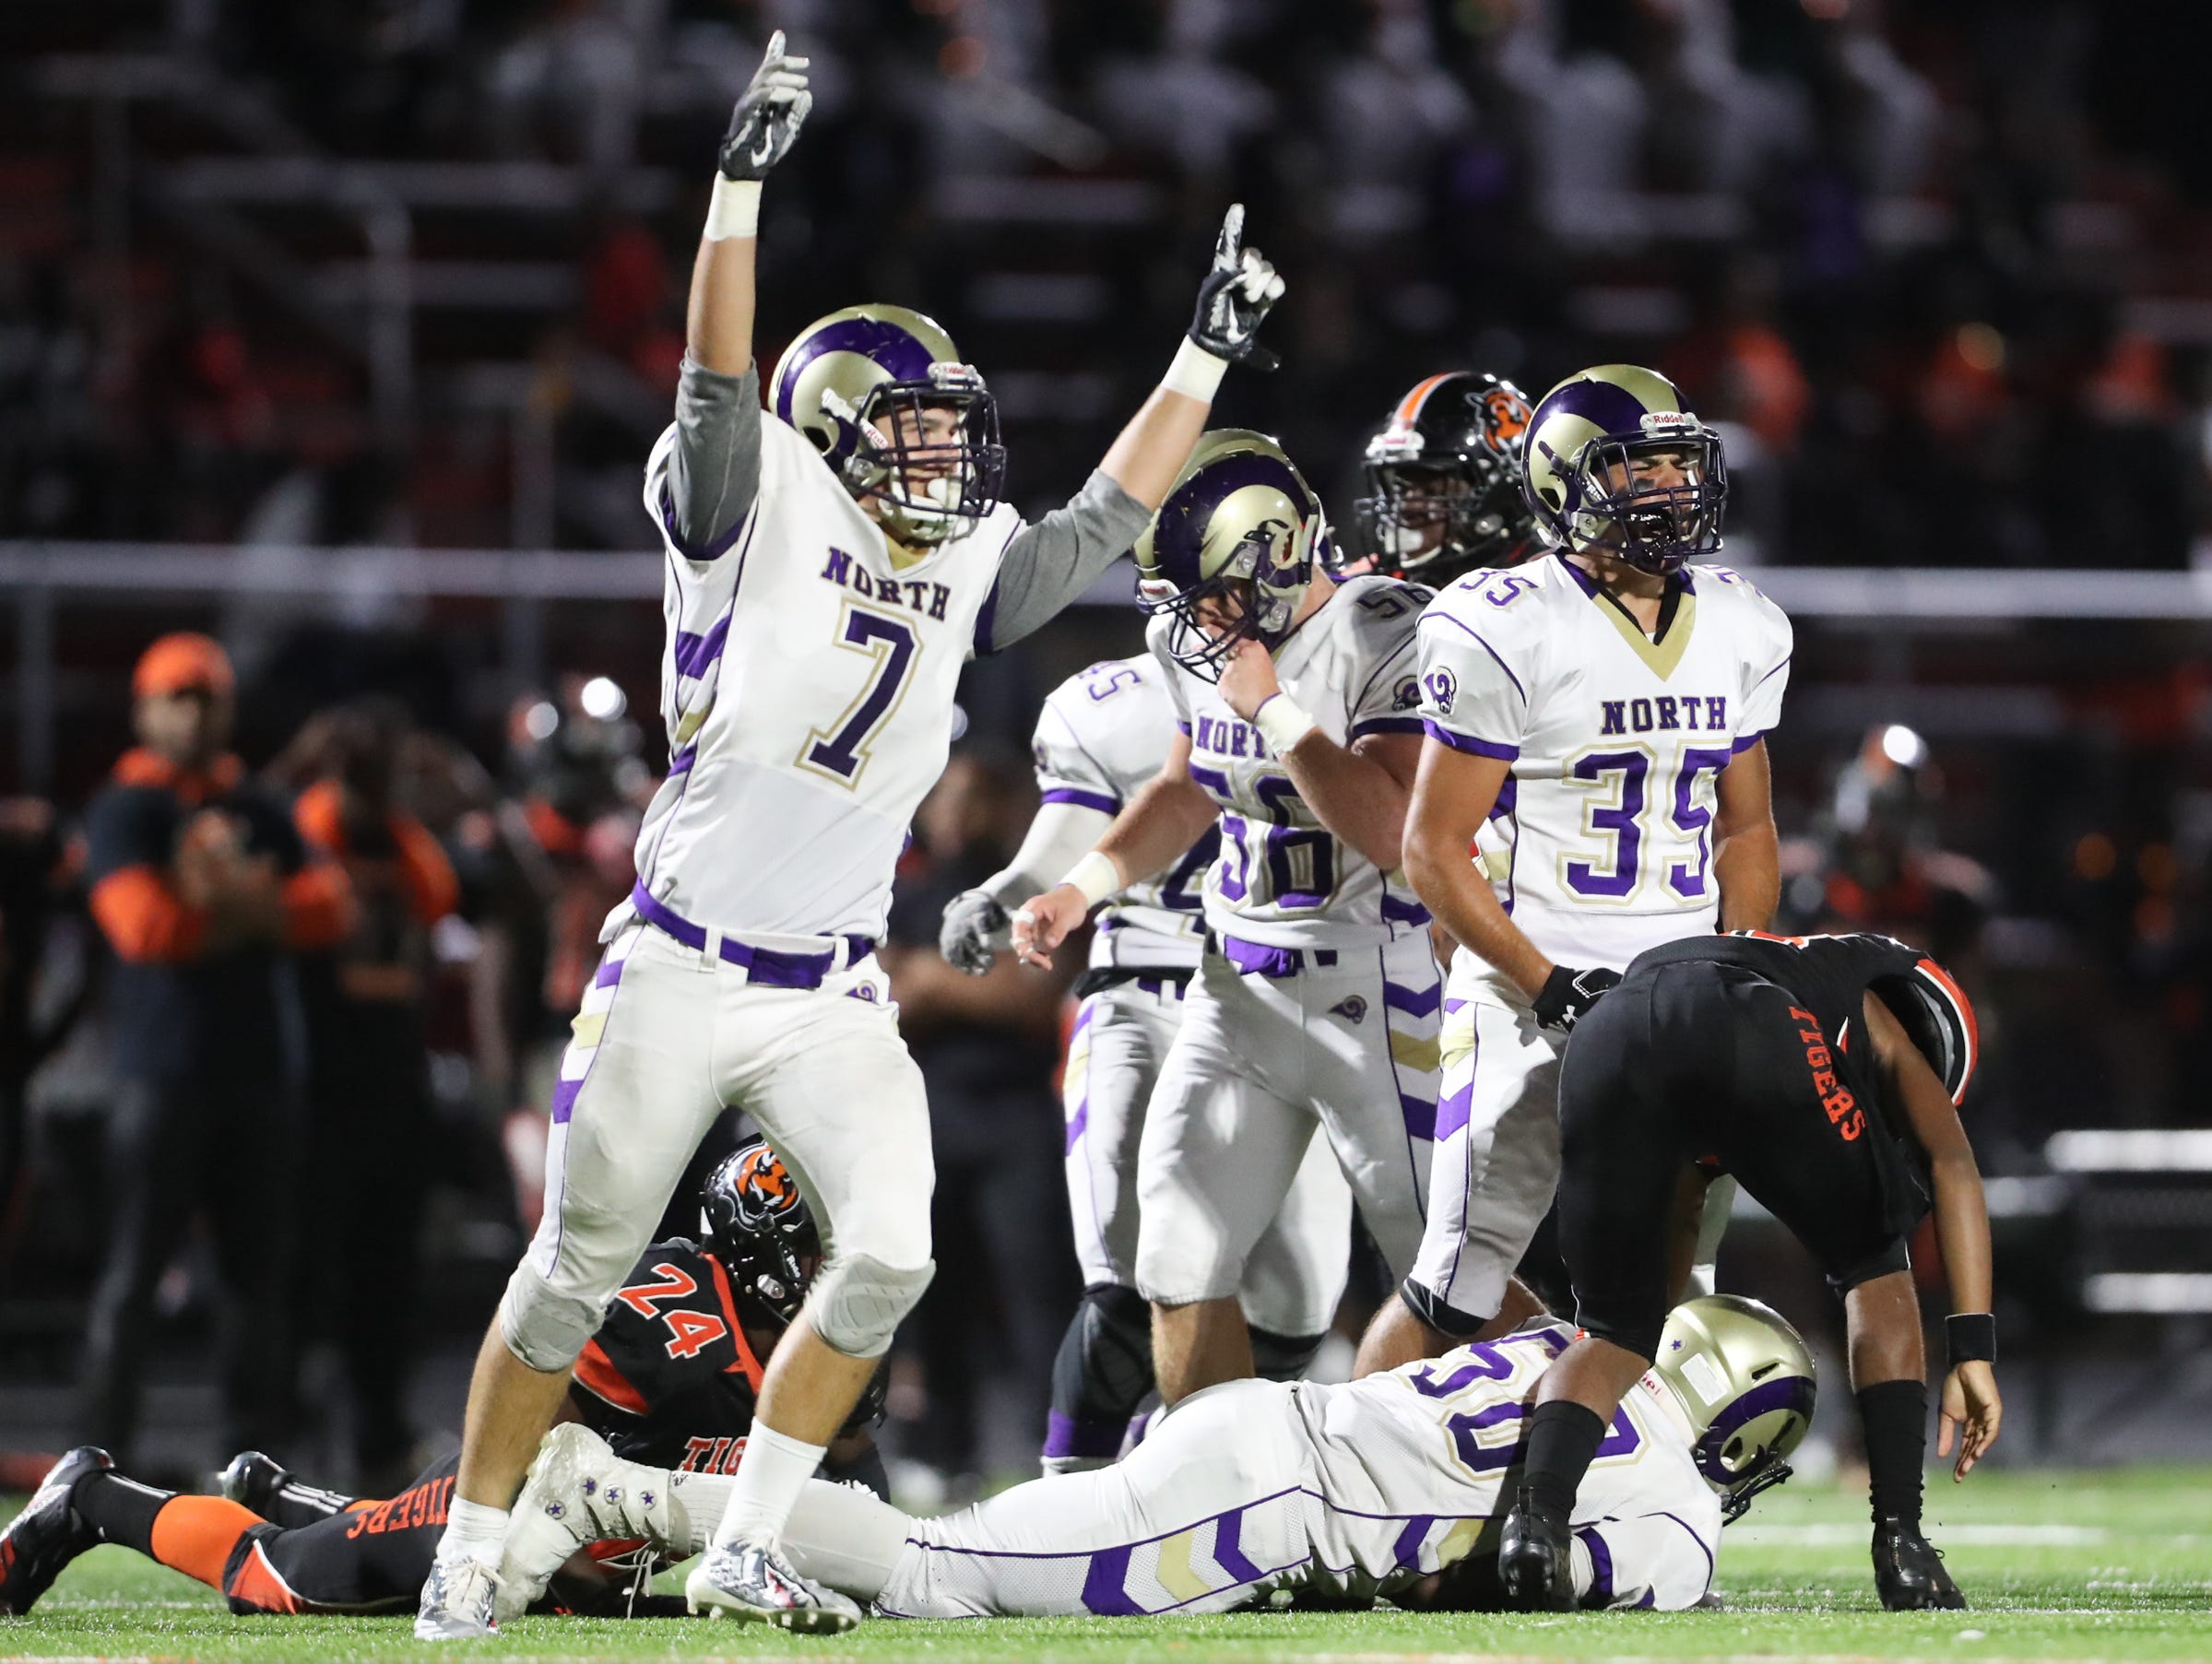 Clarkstown North's Mike McDowell (7) celebrates a fumble recovery during their 49-22 win over Spring Valley at Spring Valley High School on Friday, September 21, 2018.